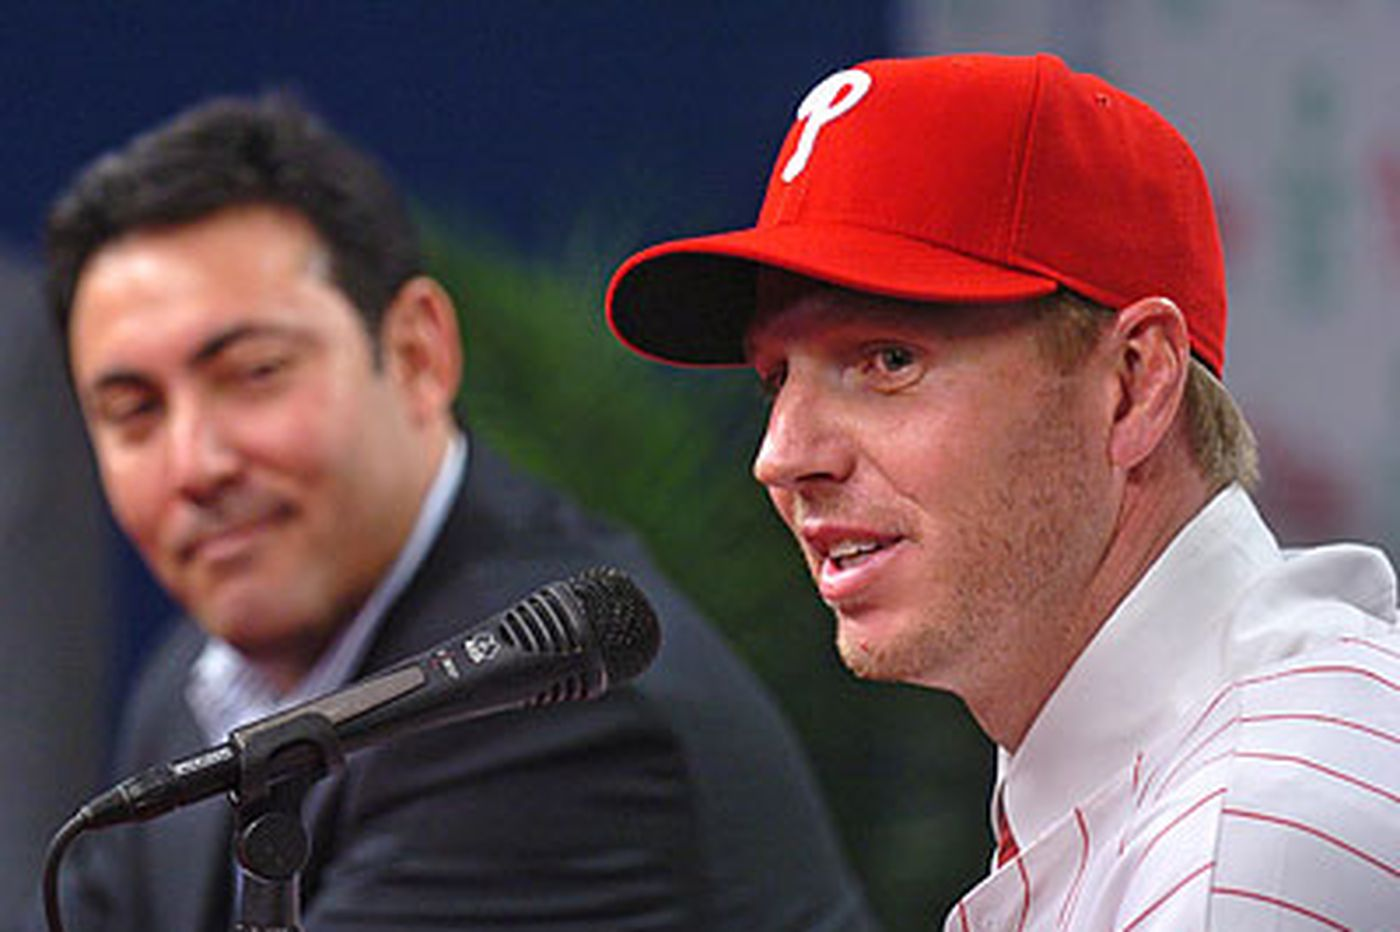 Halladay known for being charitable character